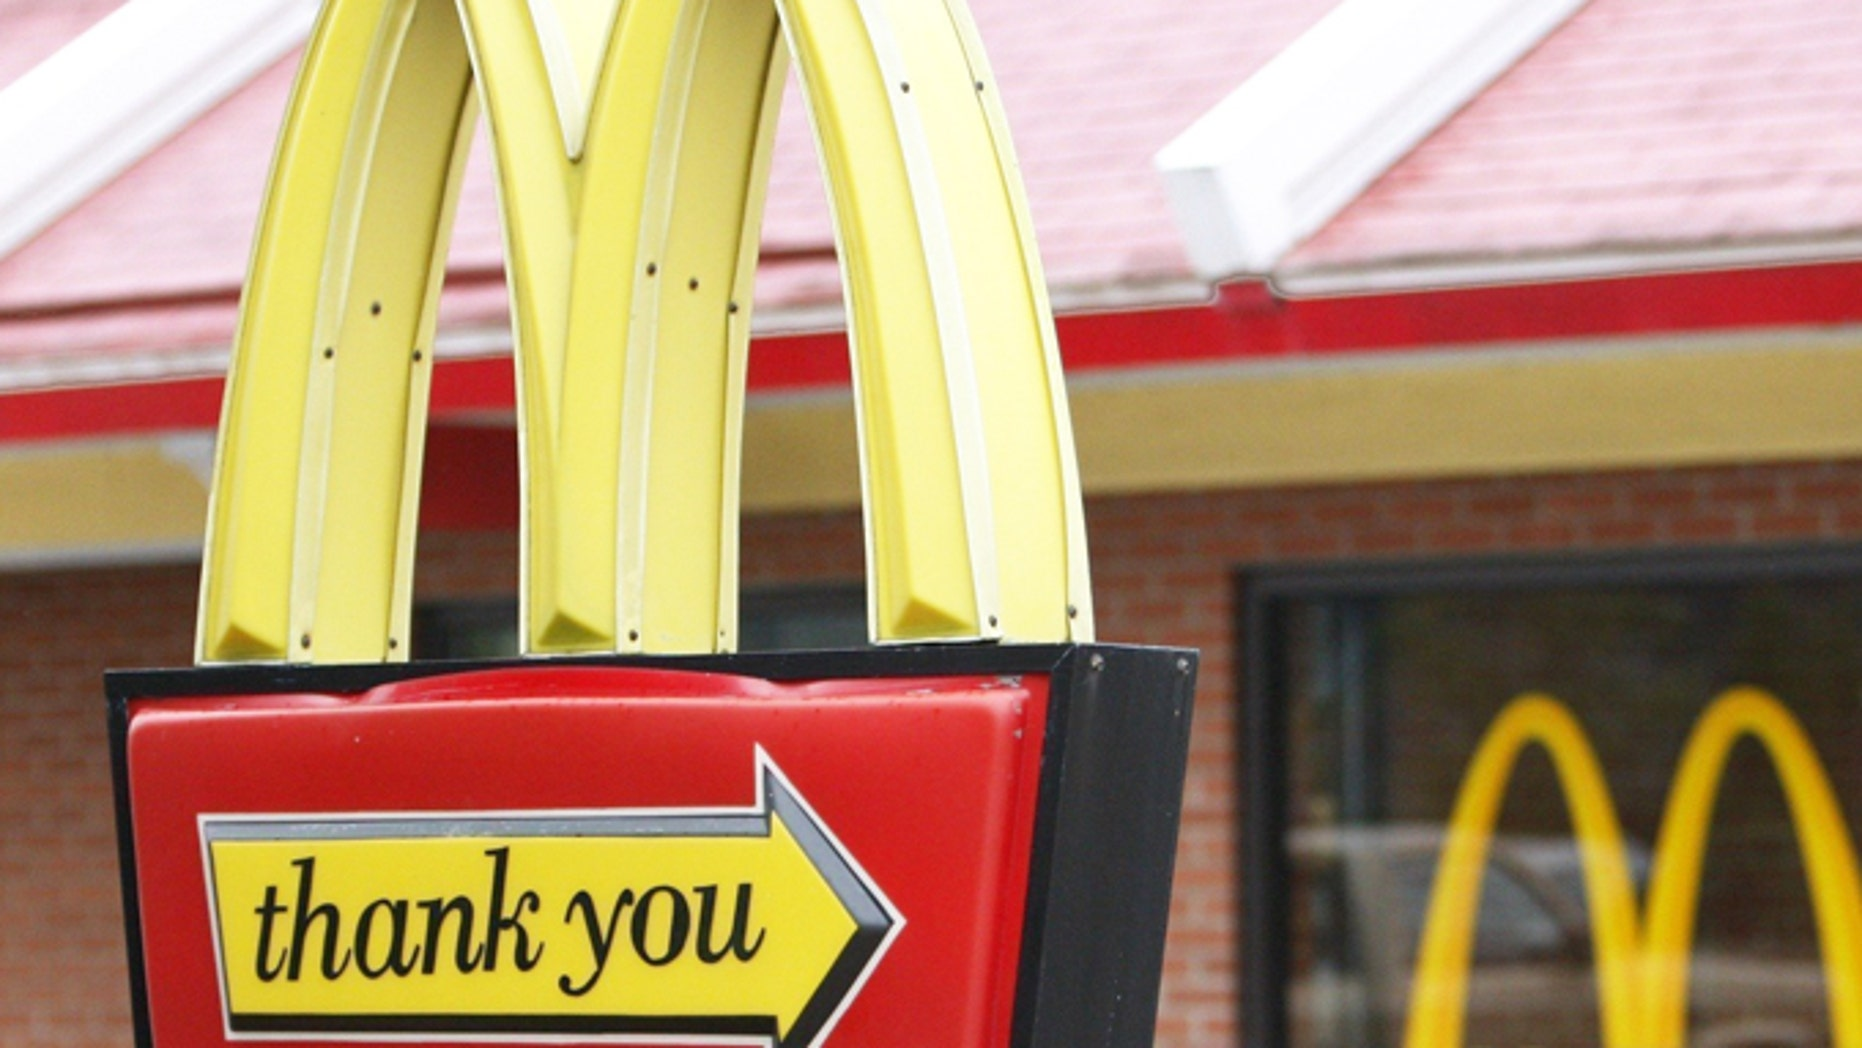 Does McDonald's drive-thru policy discriminate against the disabled?